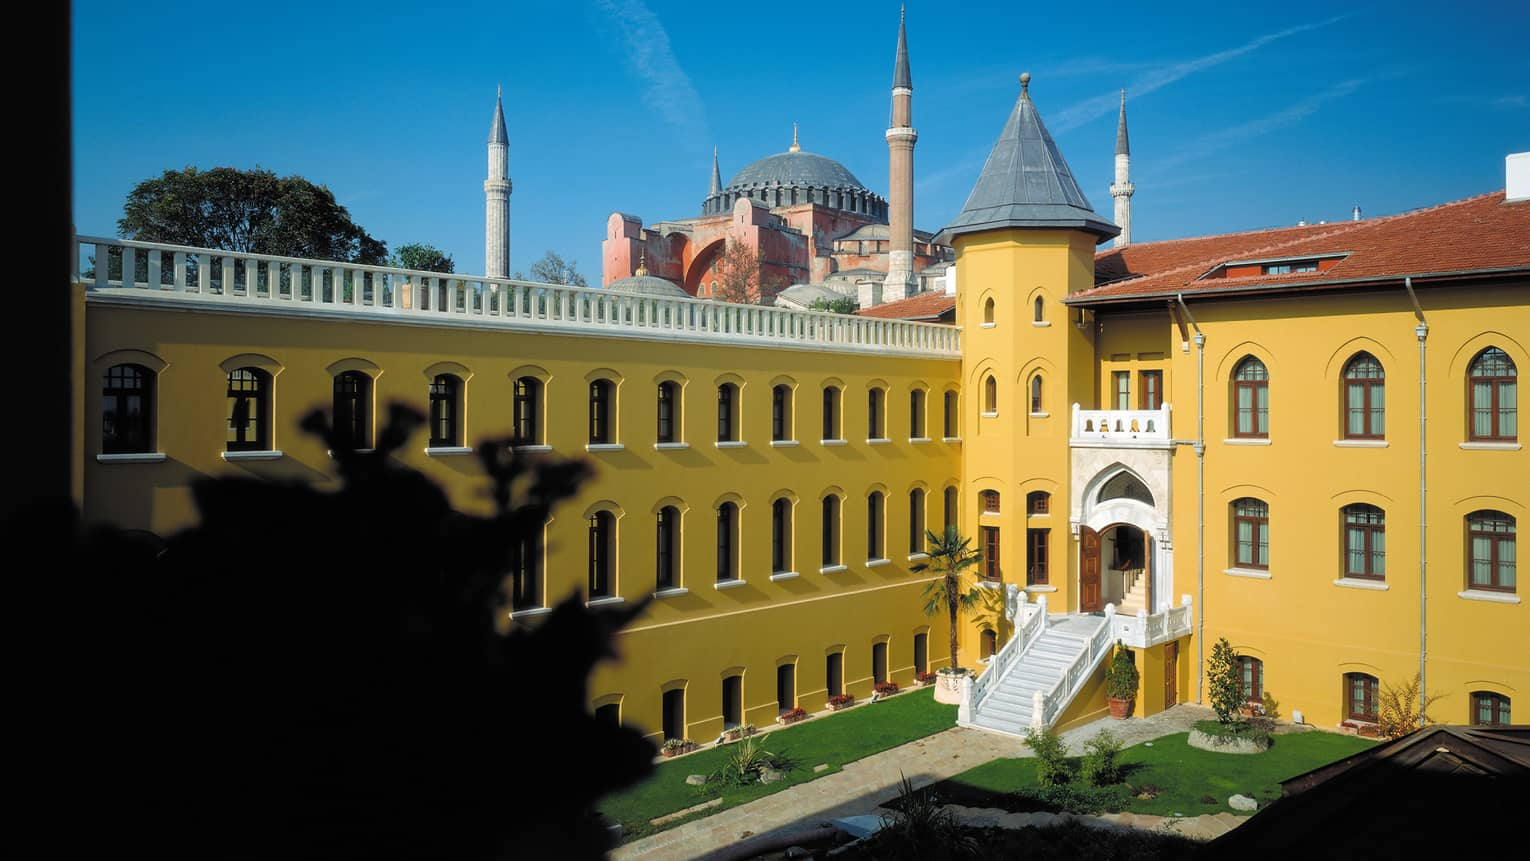 St. Sophia dome behind bright yellow walls of Four Seasons Hotel Istanbul Sultanahmet building